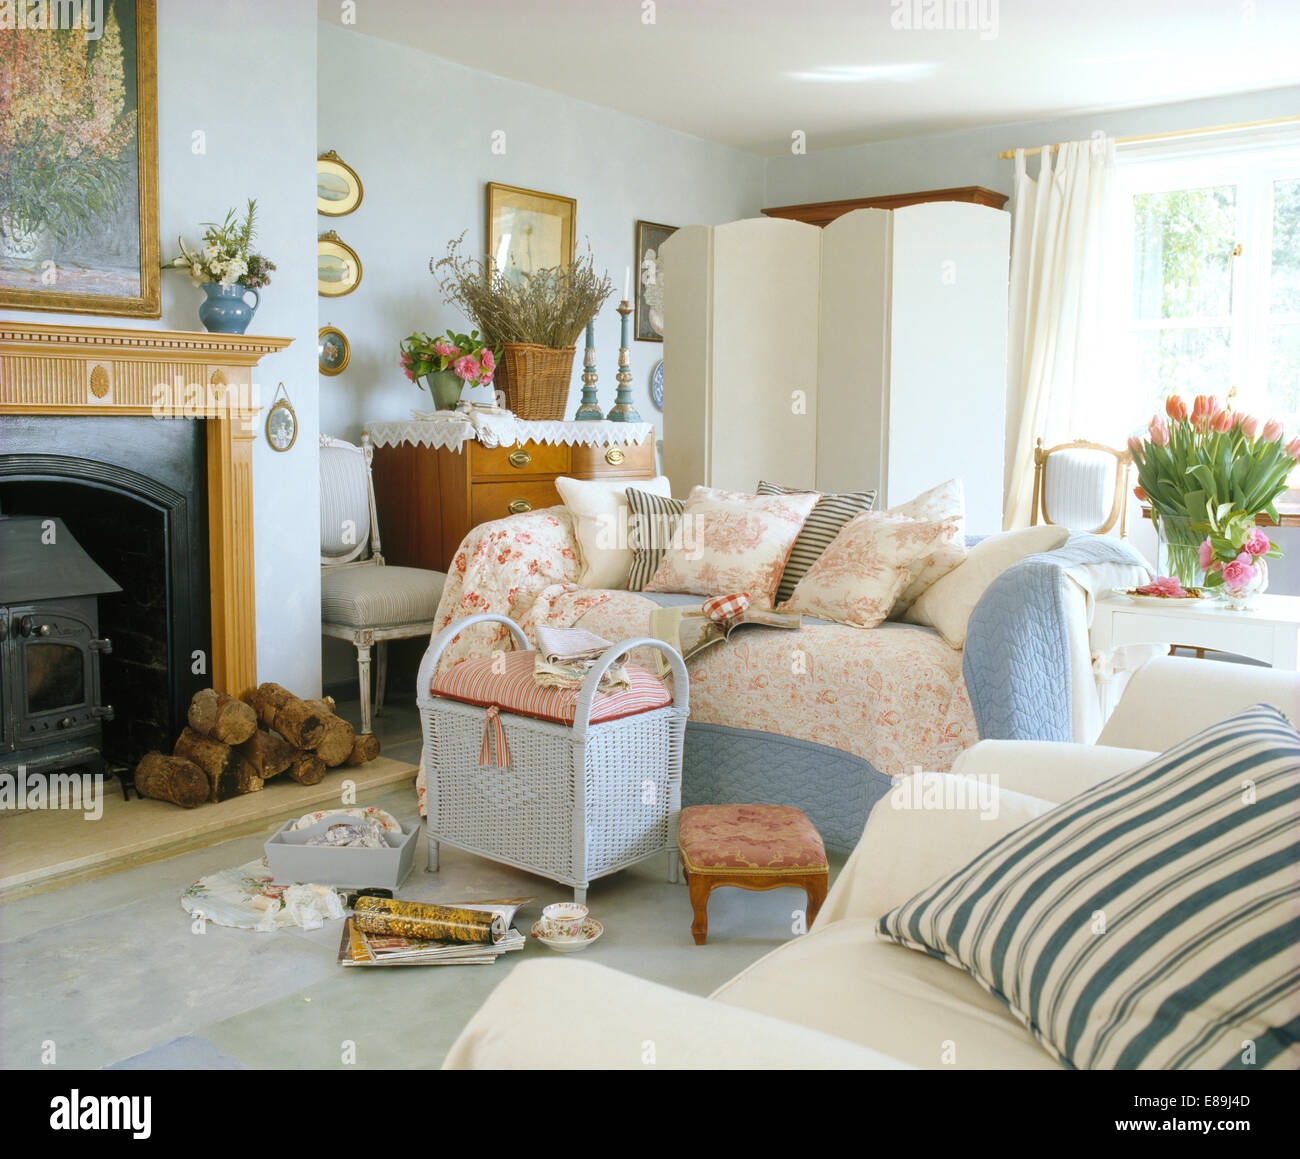 Quilted Cushions And Throws On Sofa Beside Fireplace With Wood Burning Stove In Cottage Living Room